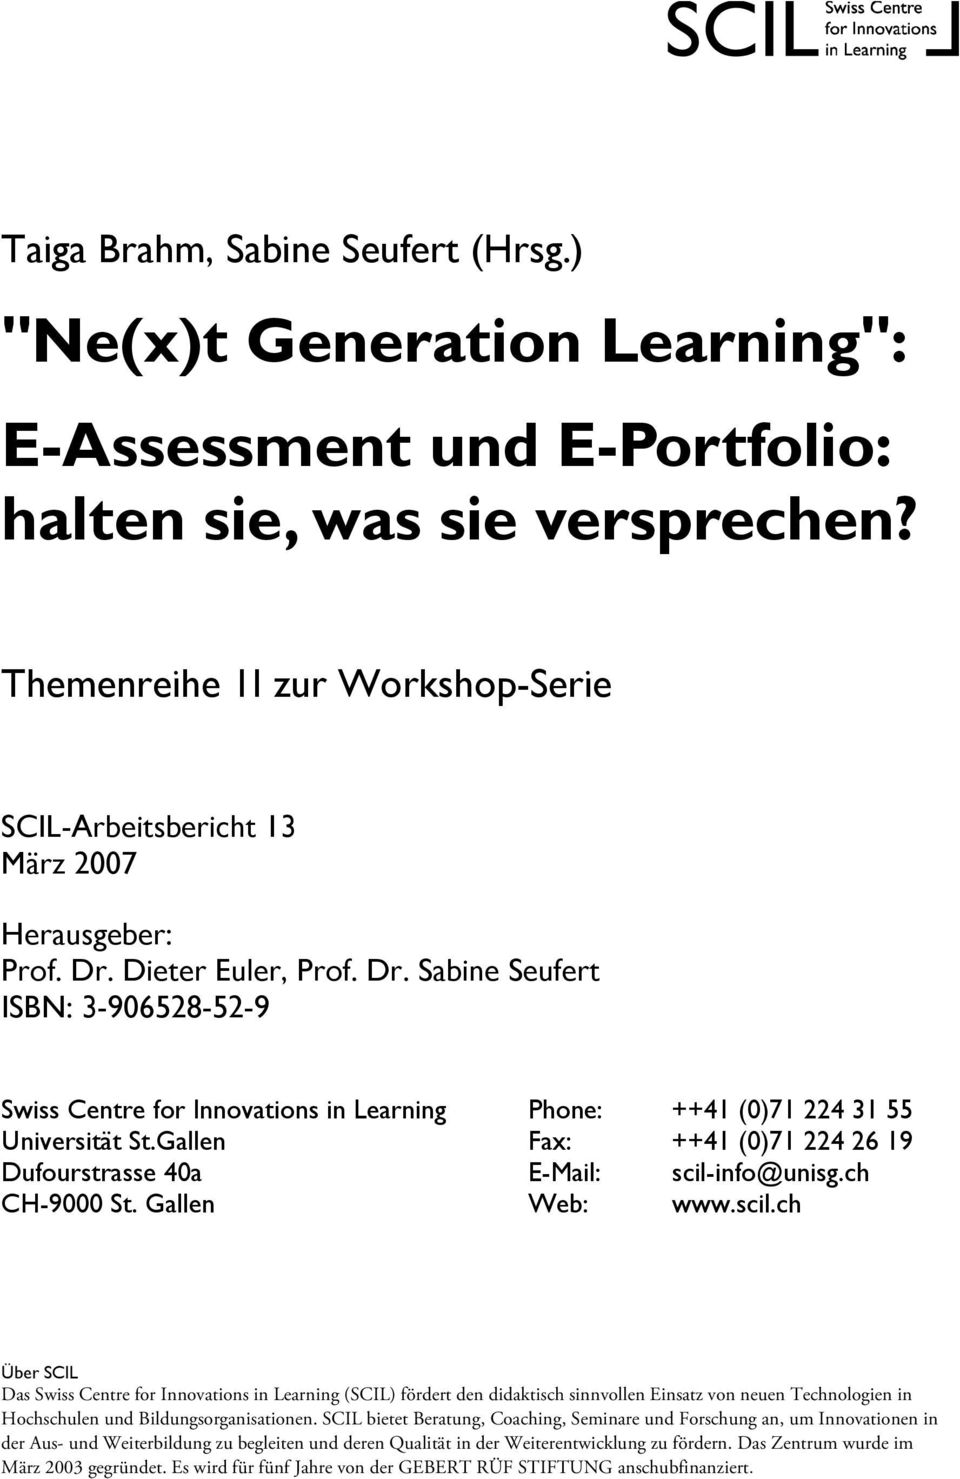 Dieter Euler, Prof. Dr. Sabine Seufert ISBN: 3-906528-52-9 Swiss Centre for Innovations in Learning Phone: ++41 (0)71 224 31 55 Universität St.